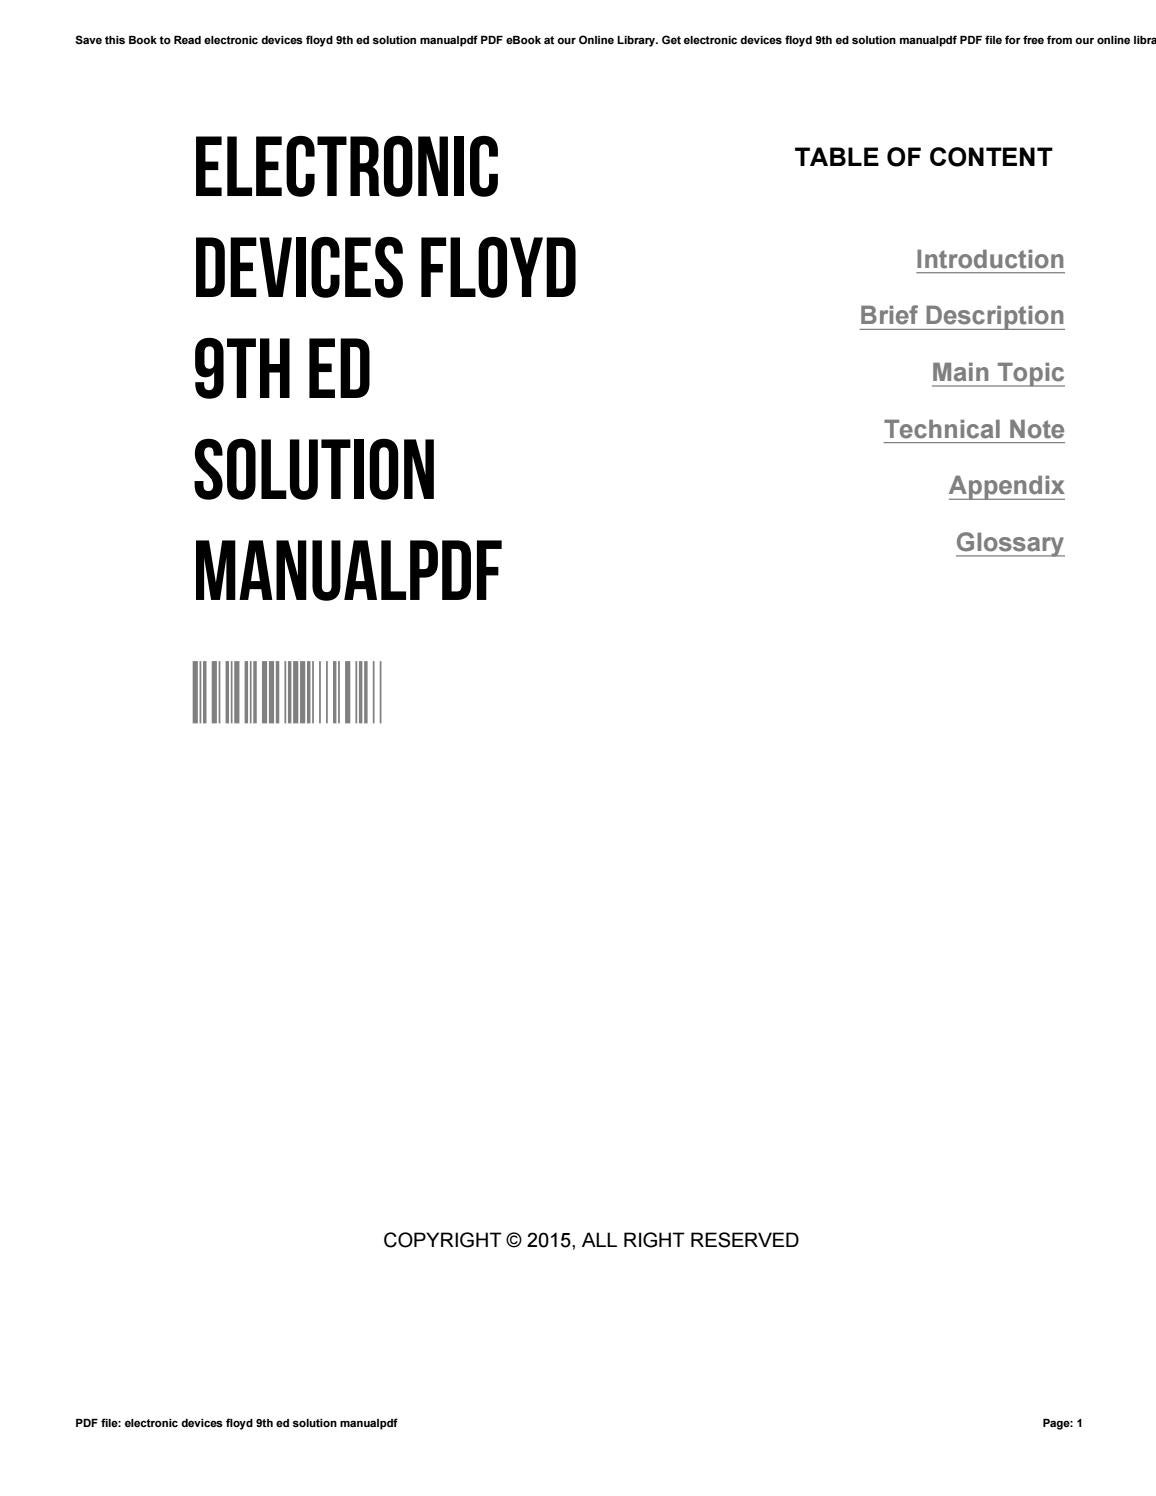 Electronic devices floyd 9th ed solution manualpdf by